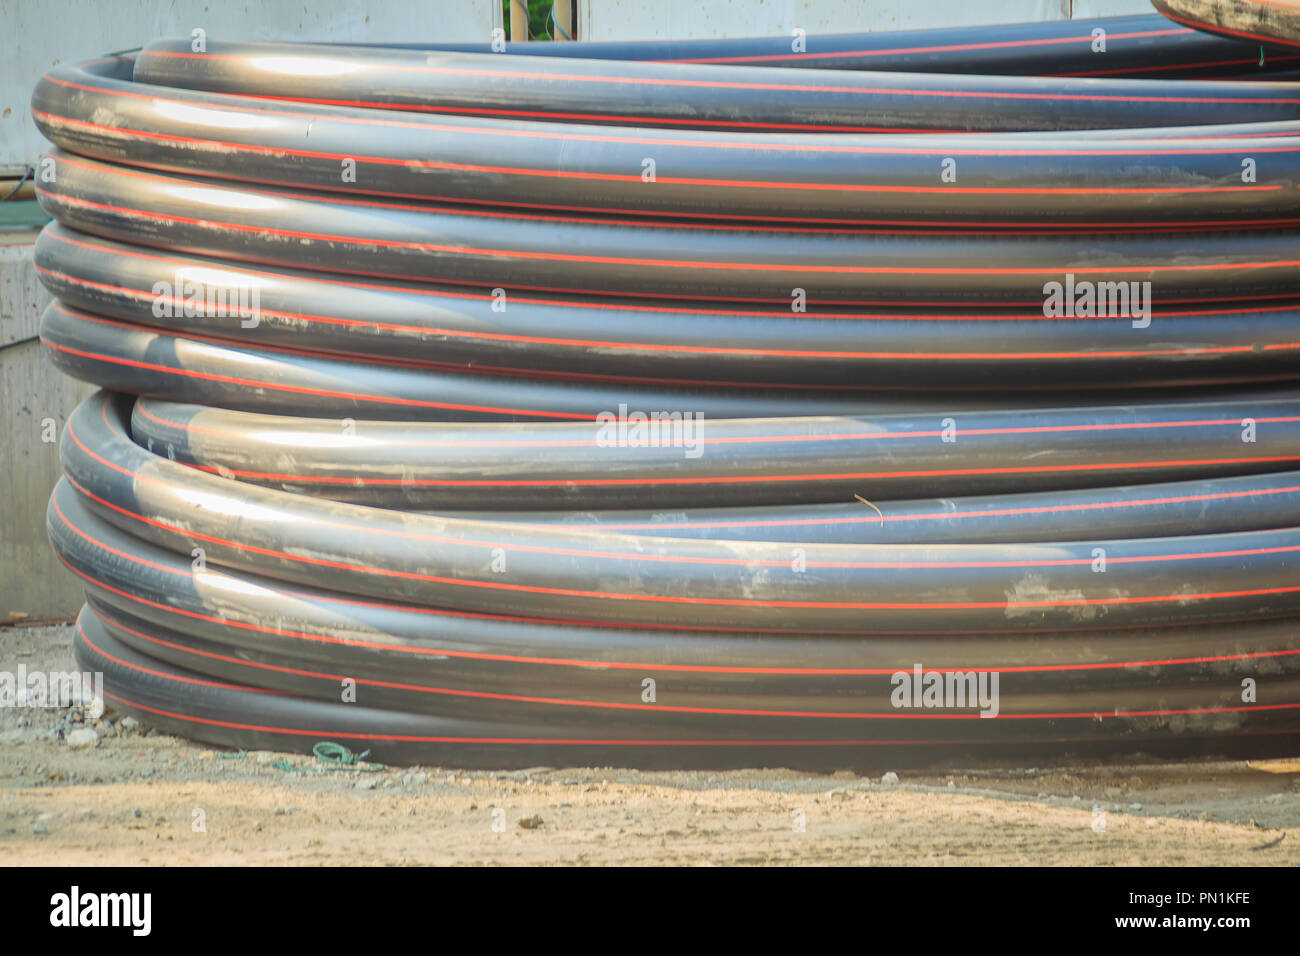 Hdpe Pipes For Water Supply And Electrical Conduit At Construction Electricwireconduitjpg Site